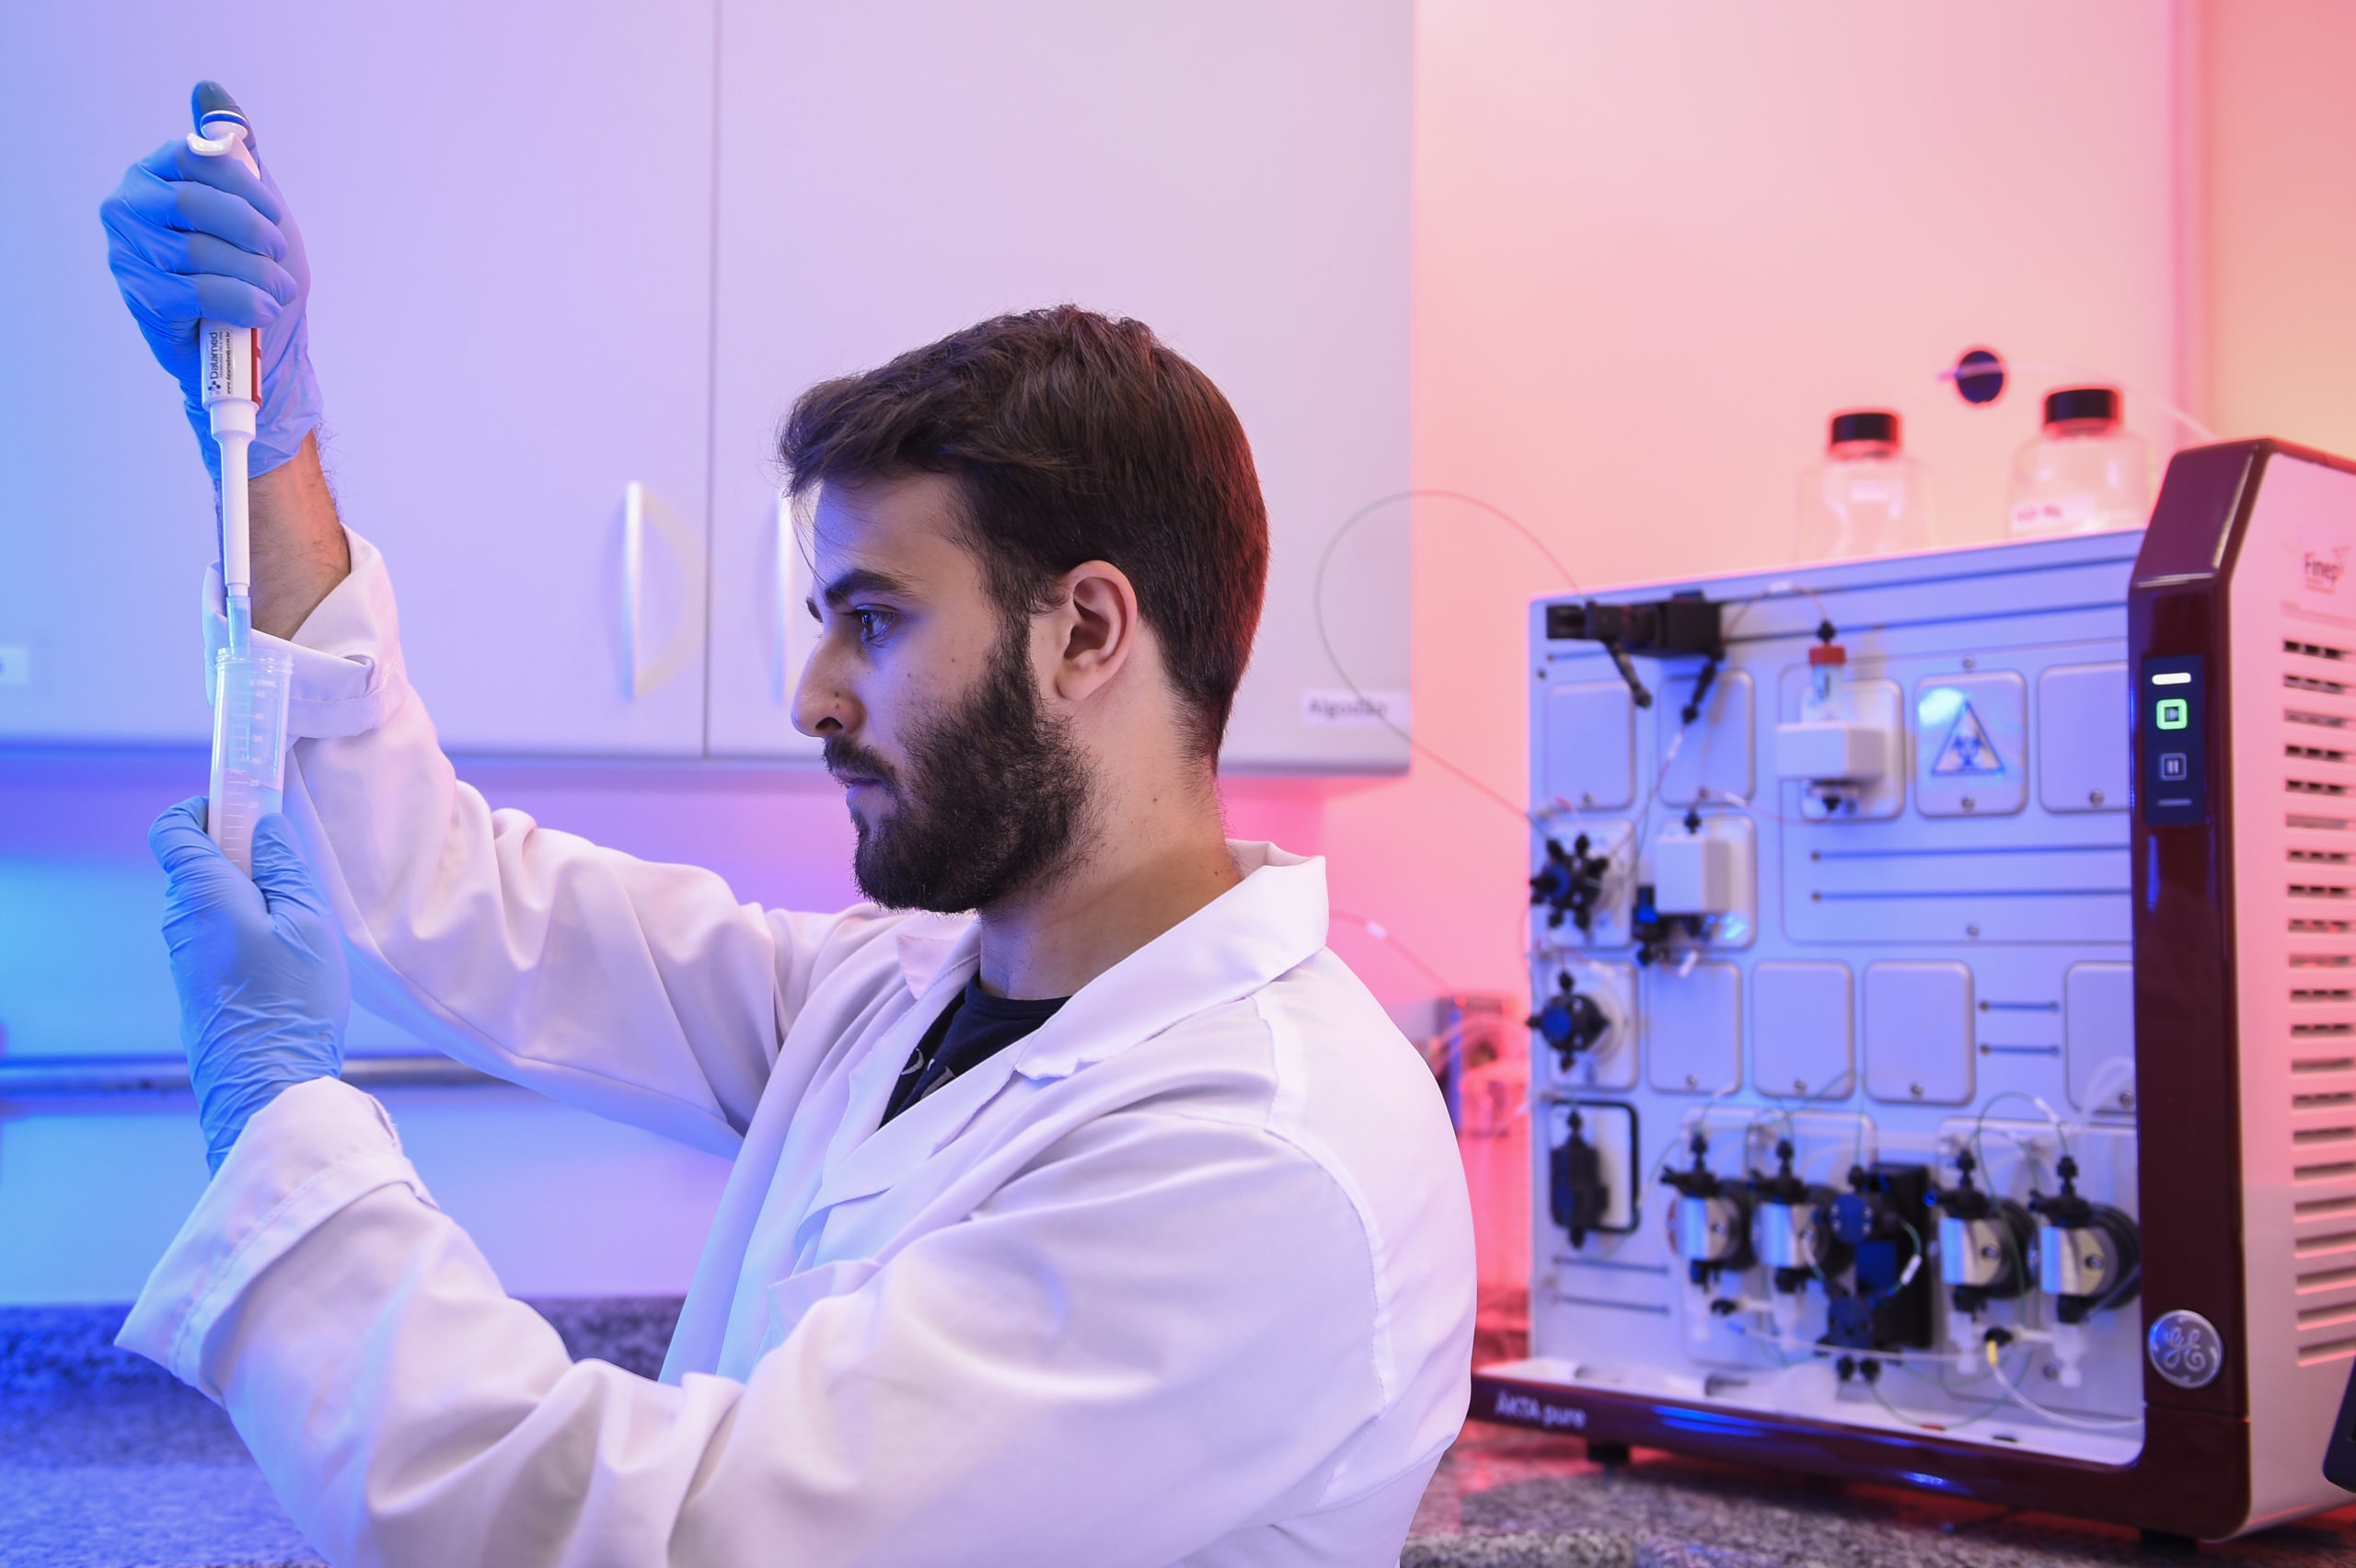 Bruno Cassaro de Andrade, a chemical engineering student, works with a test during the method of separating specific proteins to be applied in the production of vaccines on March 24, 2020 in Belo Horizonte, Brazil. The Ministry of Health convened The Technological Vaccine Center of the Federal University of Minas Gerais laboratory to conduct research on the coronavirus (COVID-19) in order to diagnose, test and develop a vaccine. According to the Ministry of Health, as of Tuesday, March 24, Brazil has 1.891 confirmed cases of the coronavirus (COVID-19) and at least 34 recorded deceases. (Photo by Pedro Vilela/Getty Images)